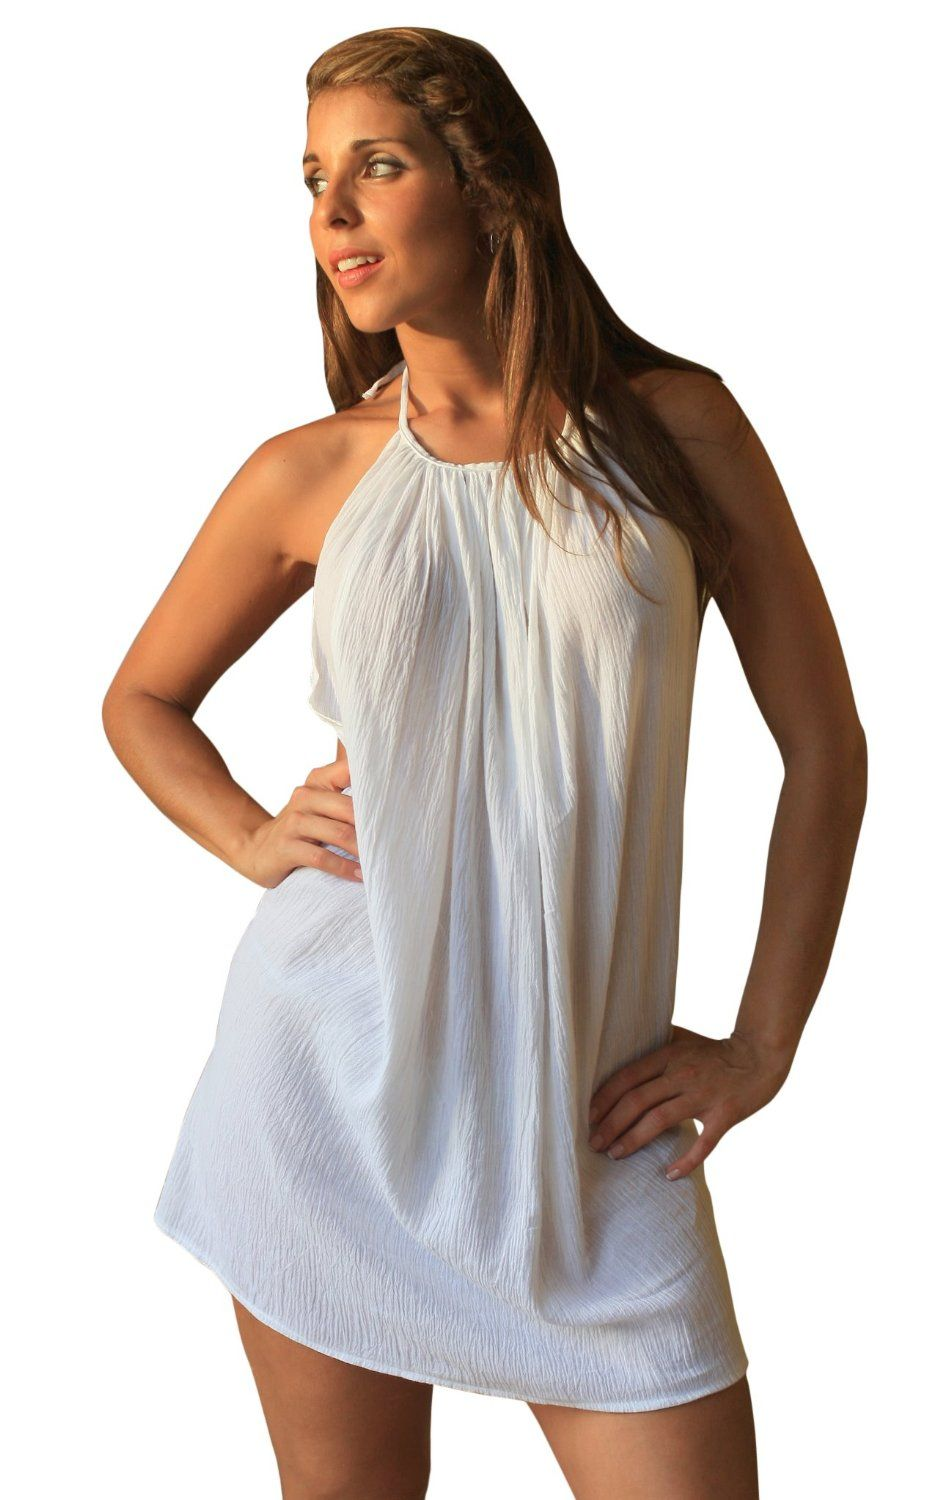 Ujena White Gauze Backless On The Beach Cover Up Swimwear Beach